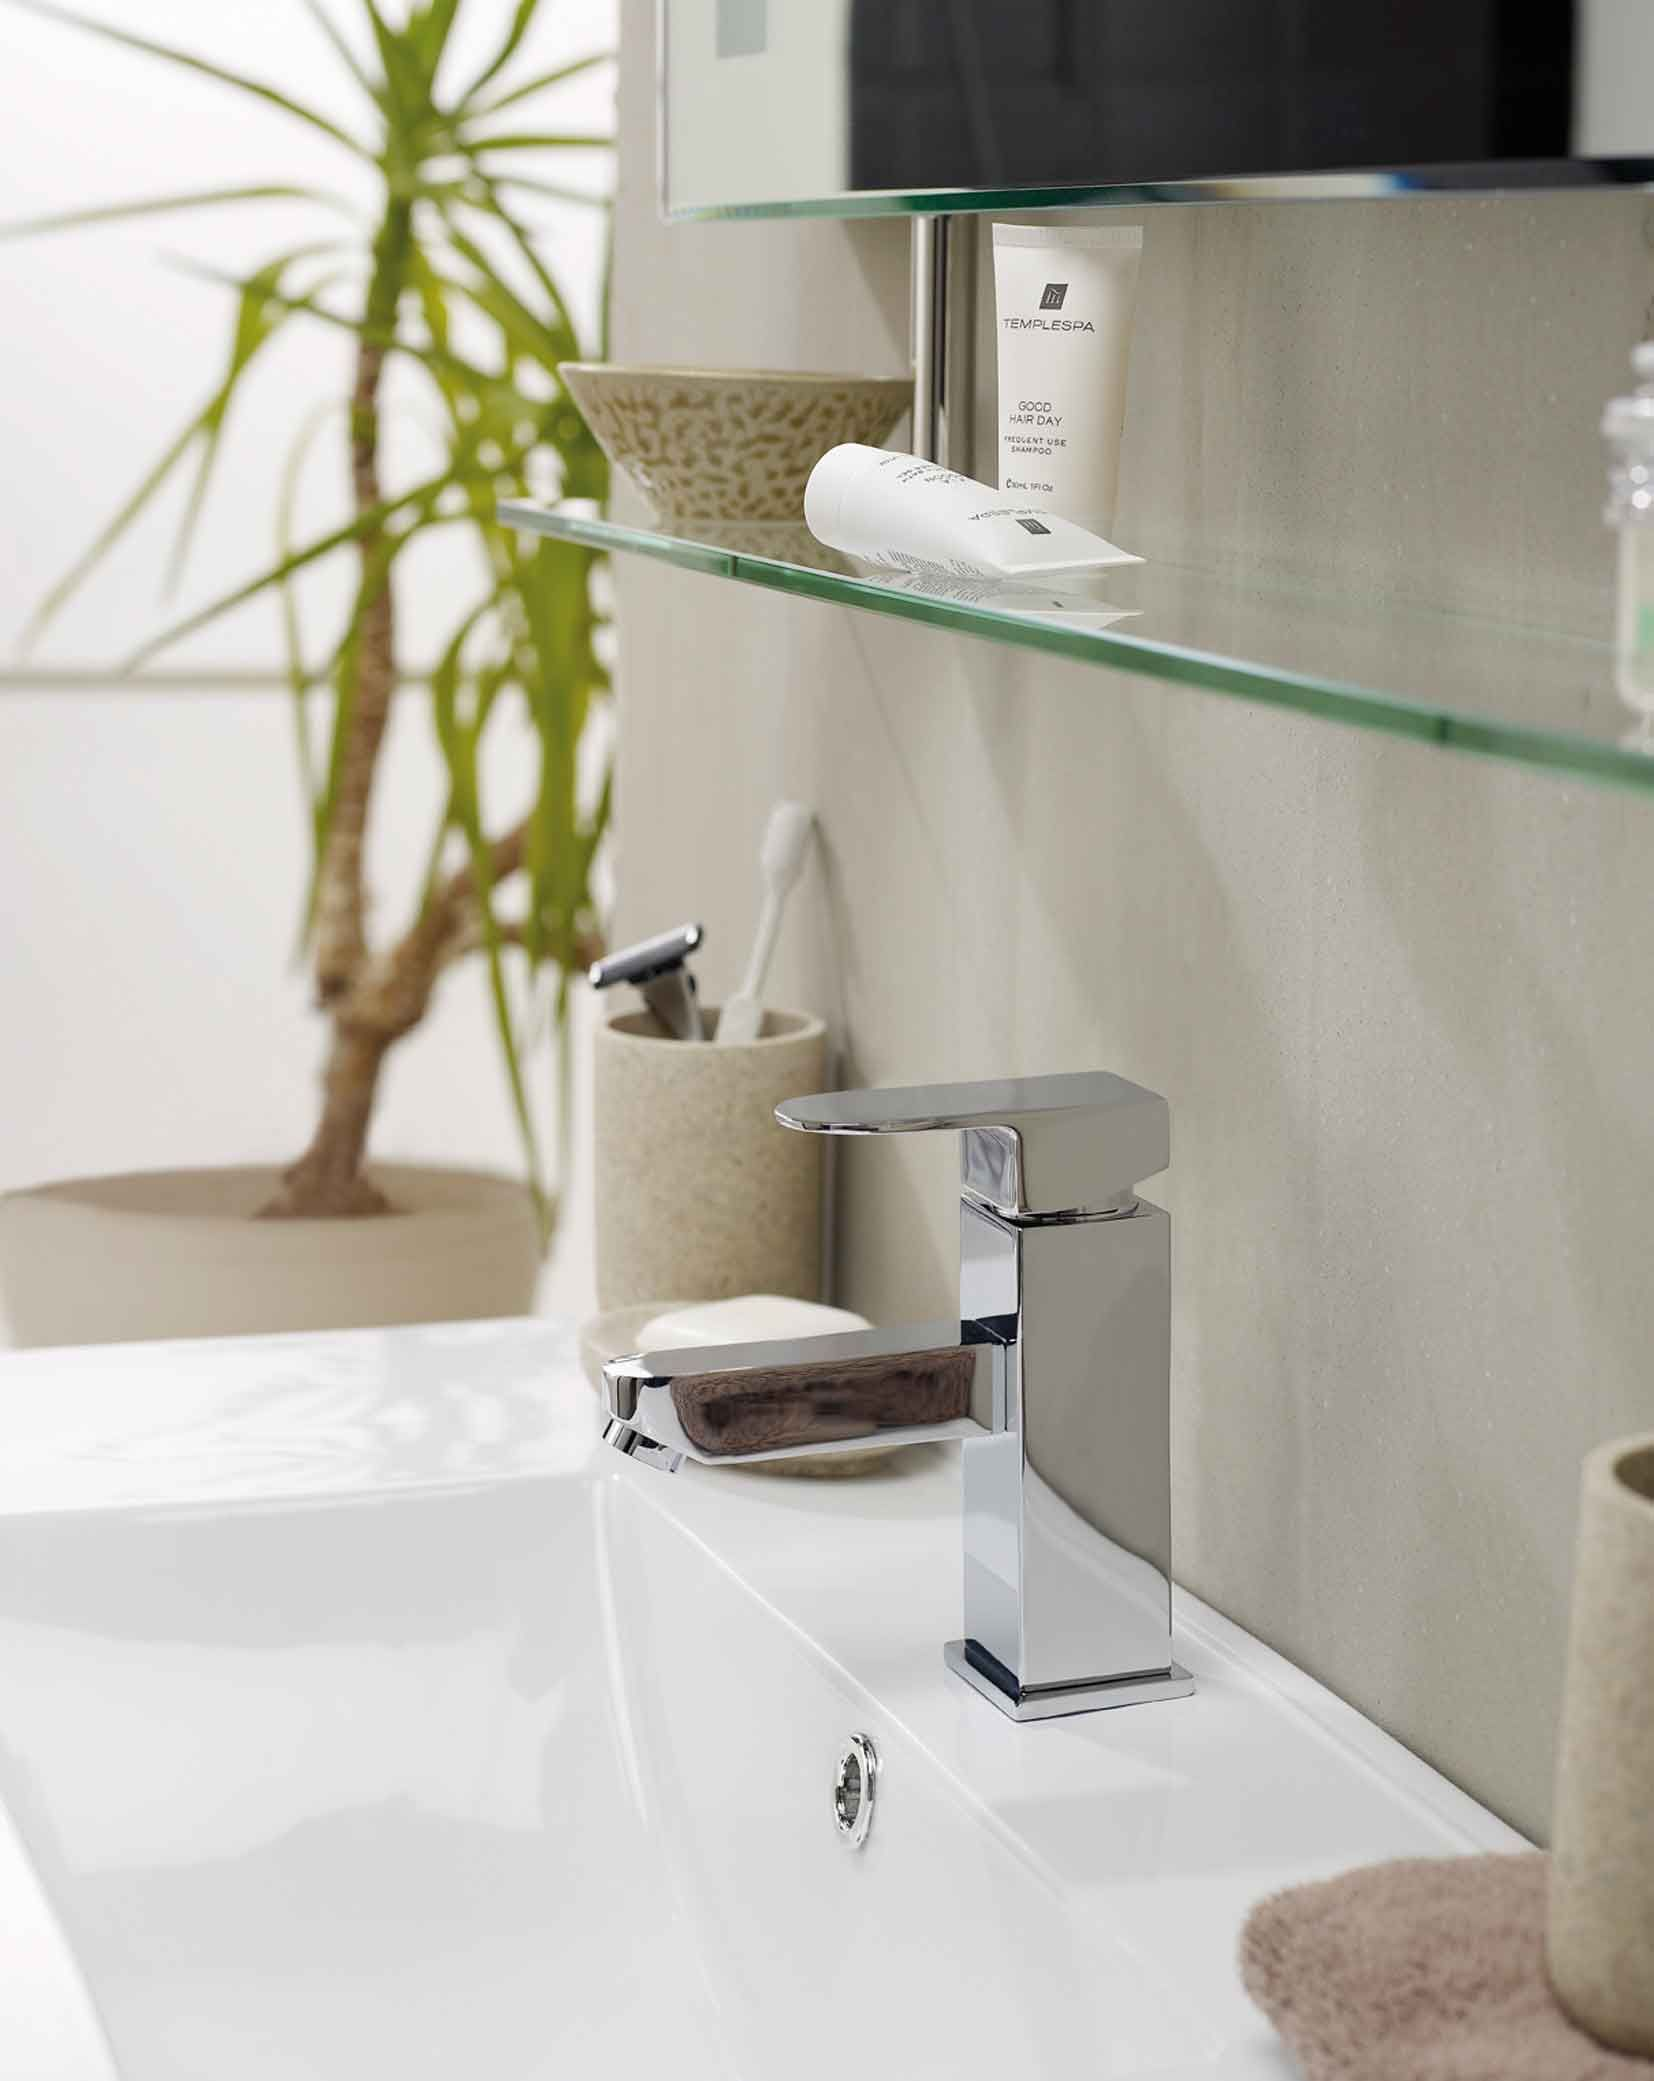 The Quest range combines a stylish lever design together with the ...